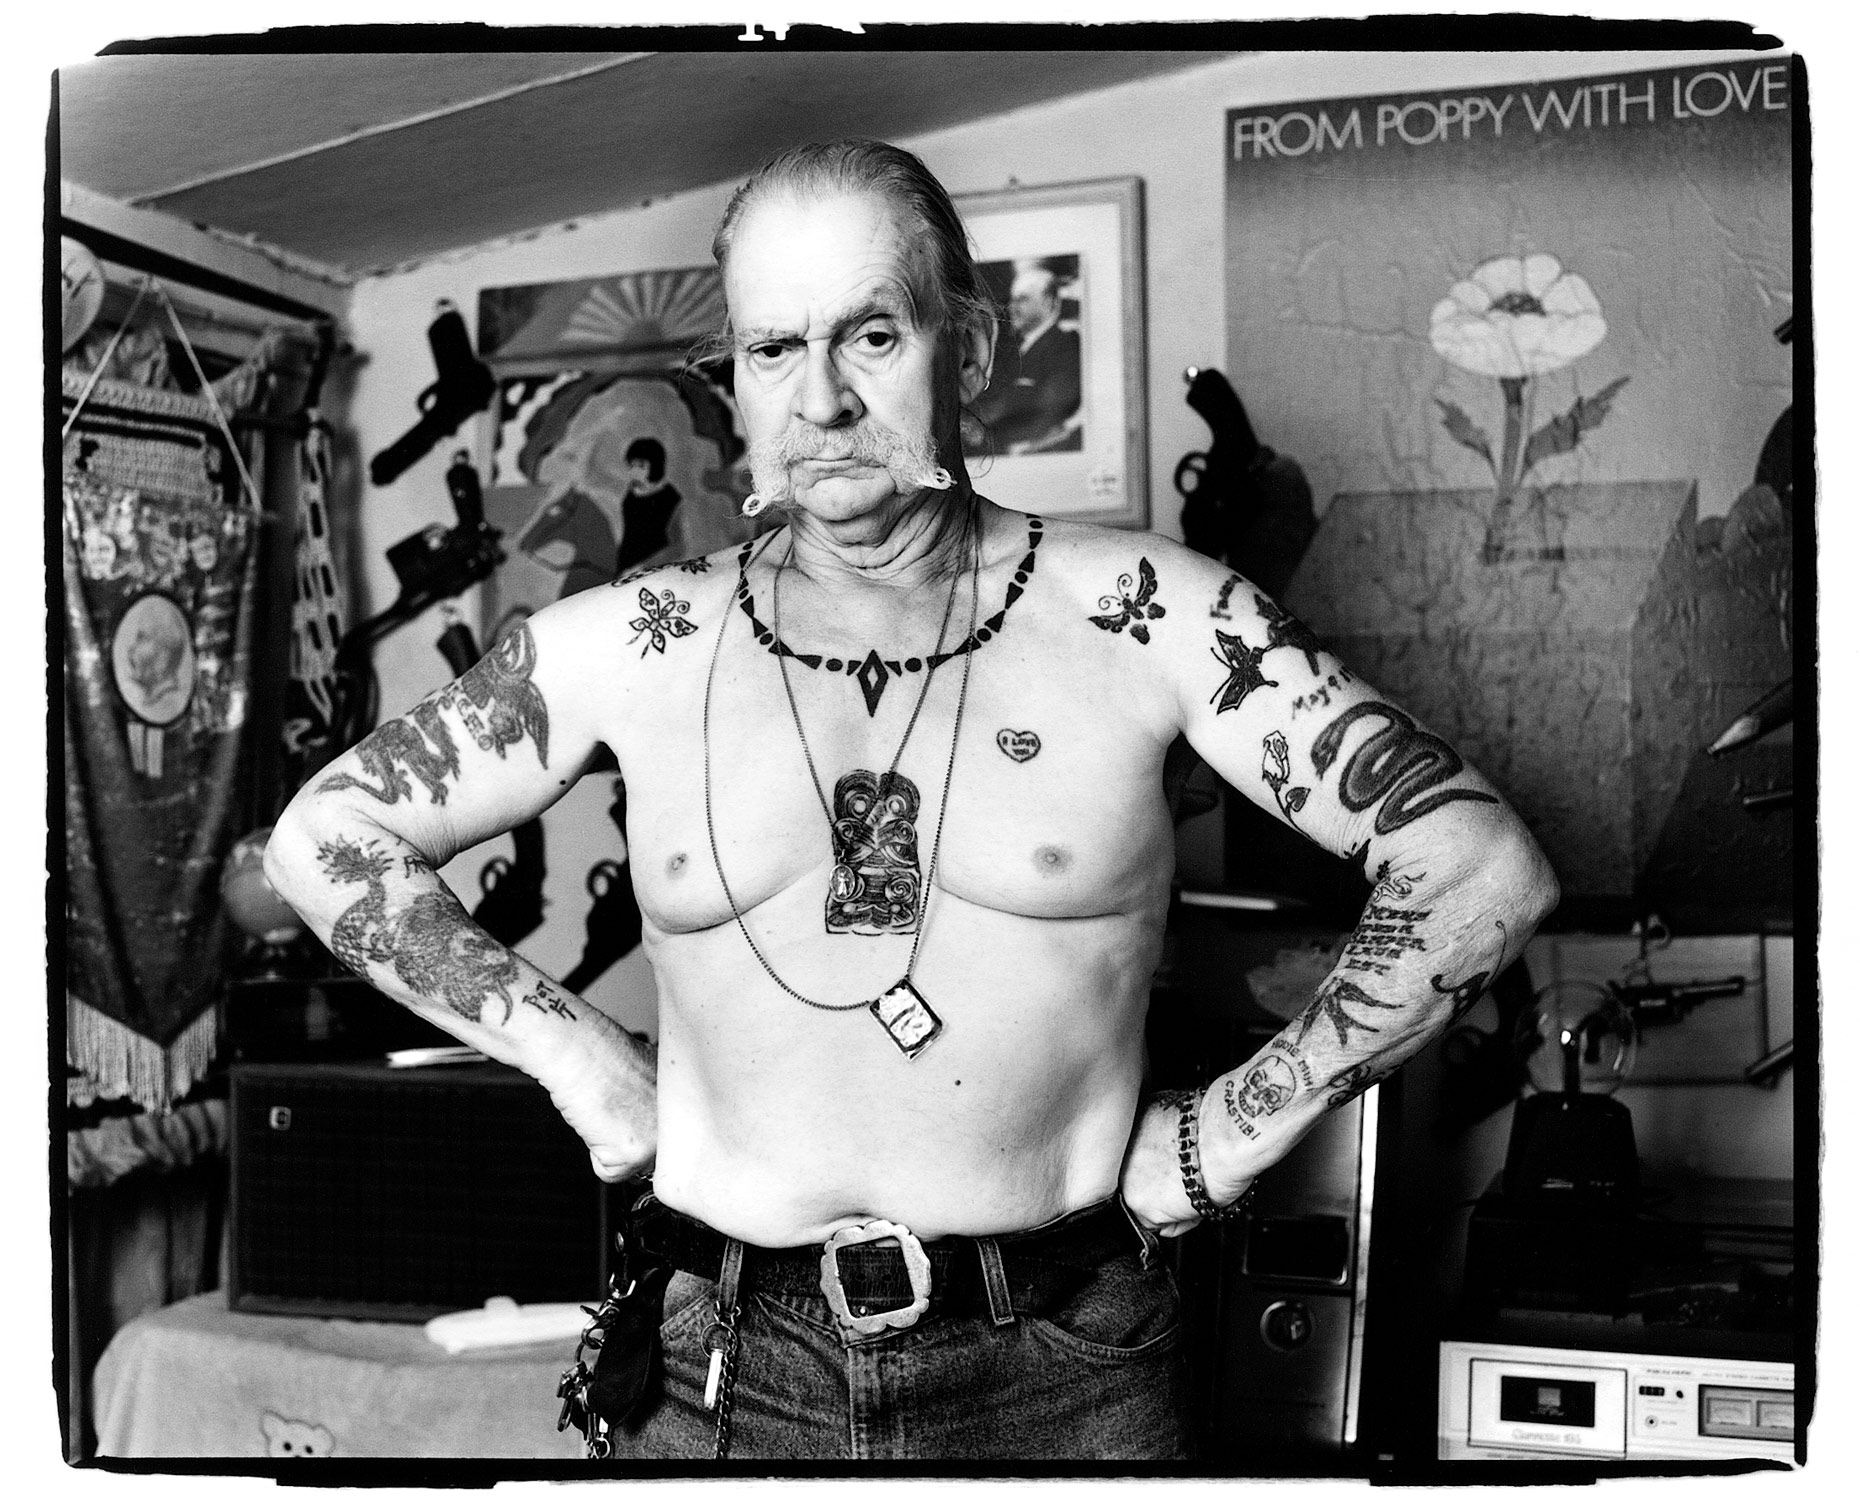 Frank Hillary stands shirtless showing off his tattoos in front of his gun collection in Tucson, AZ.